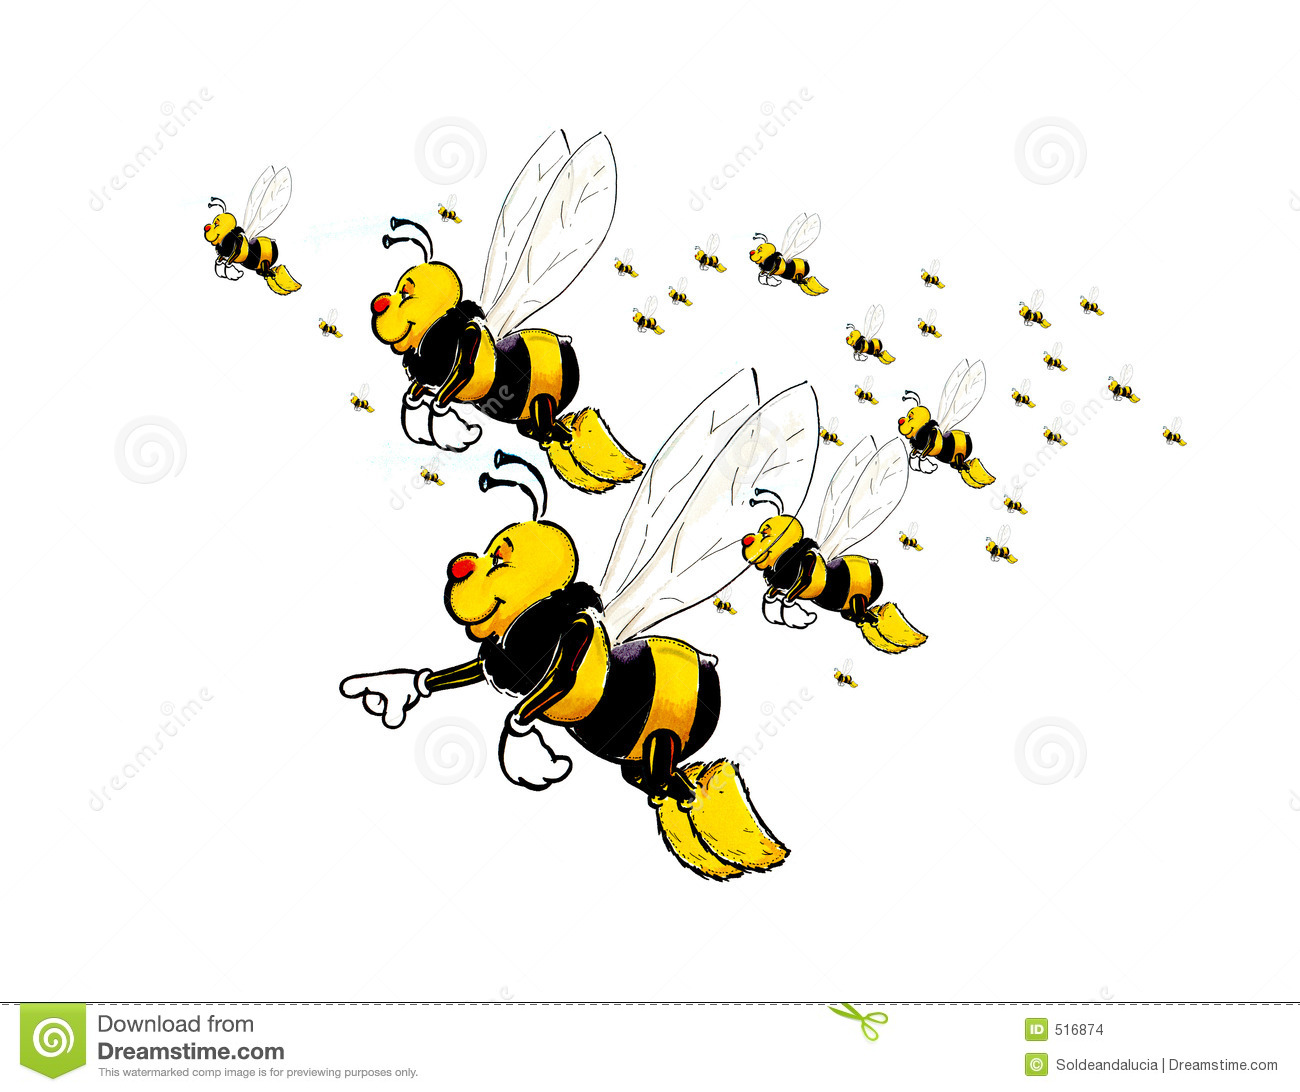 Flying Bees Stock Images - Image: 516874